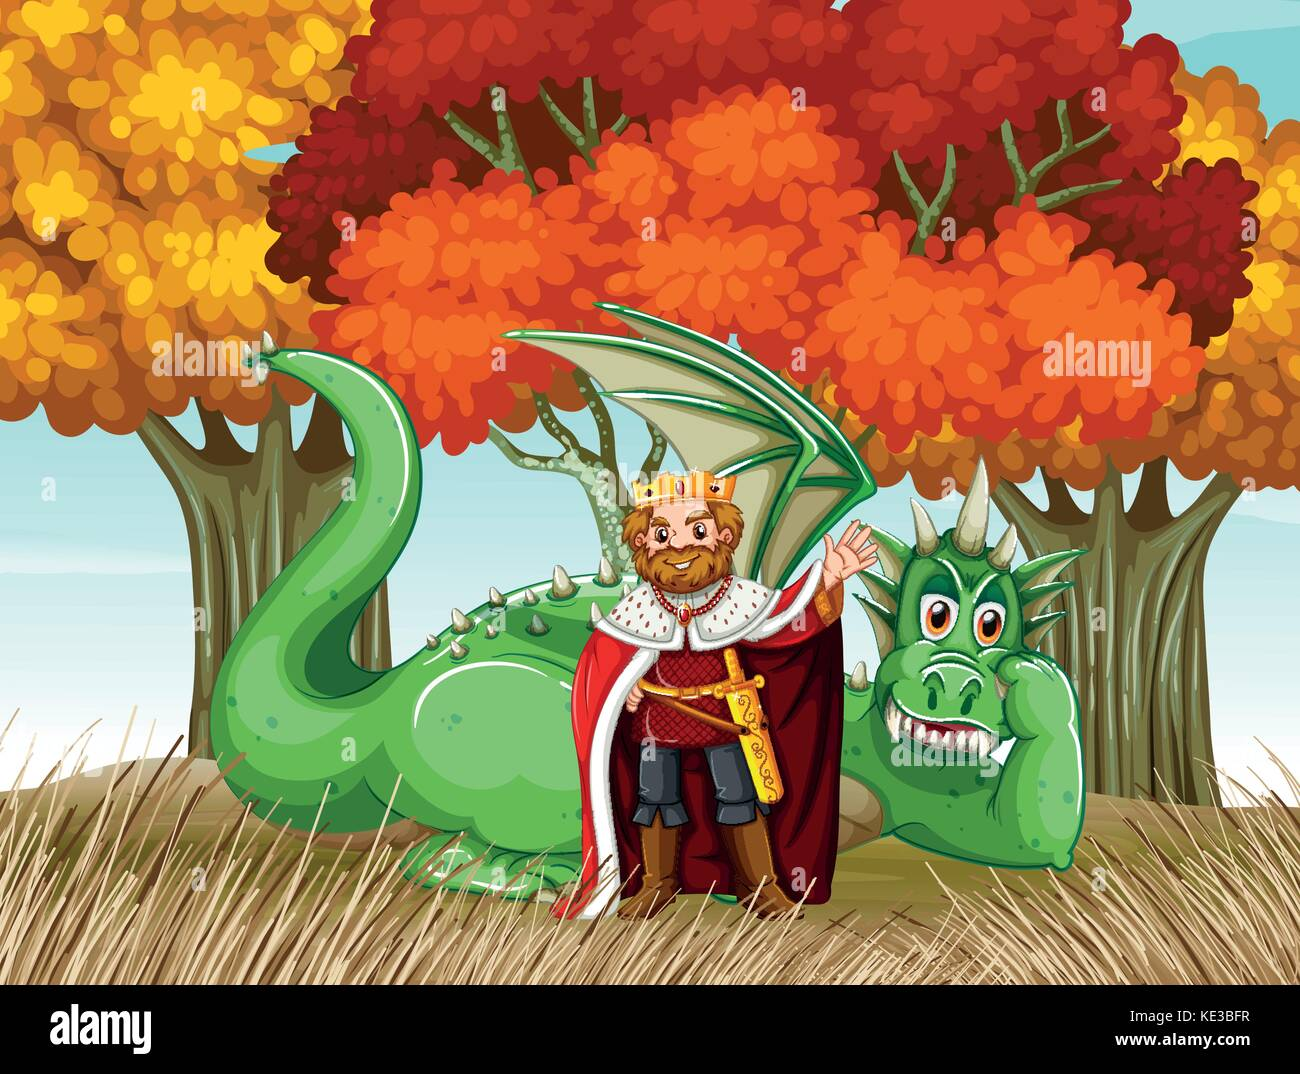 King and dragon in the field illustration - Stock Image